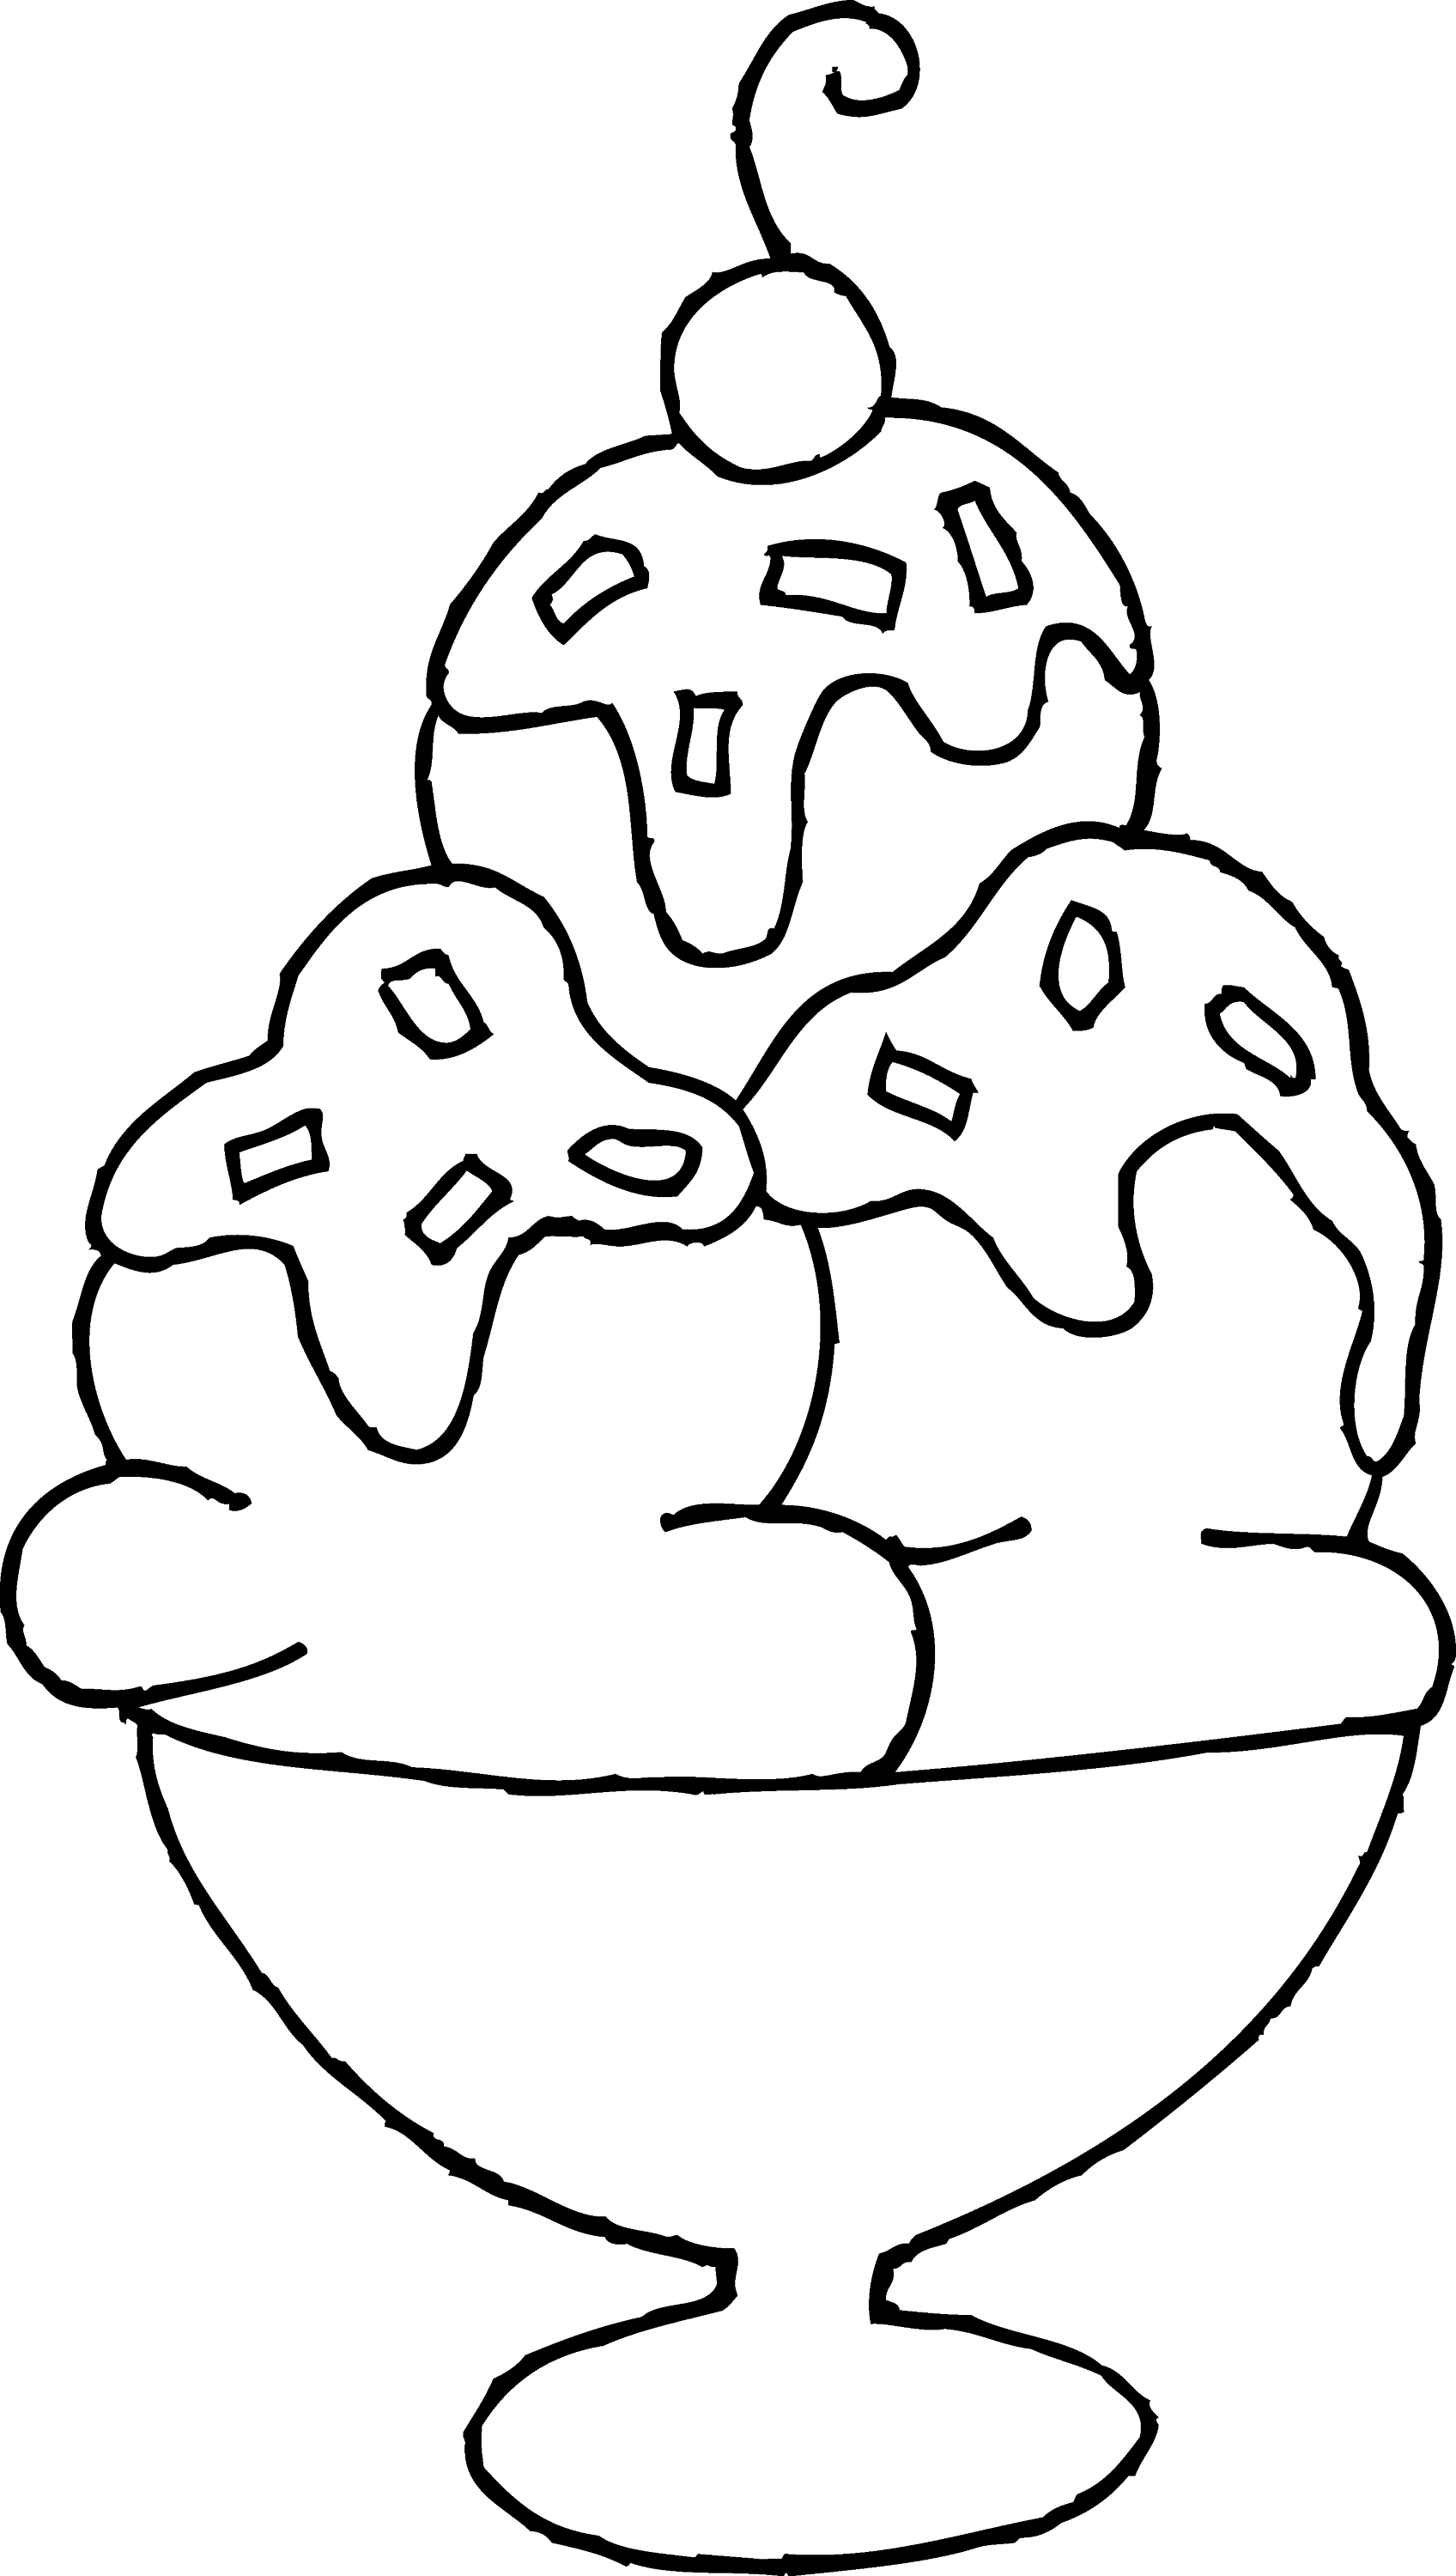 ice cream sundae coloring page free clip art